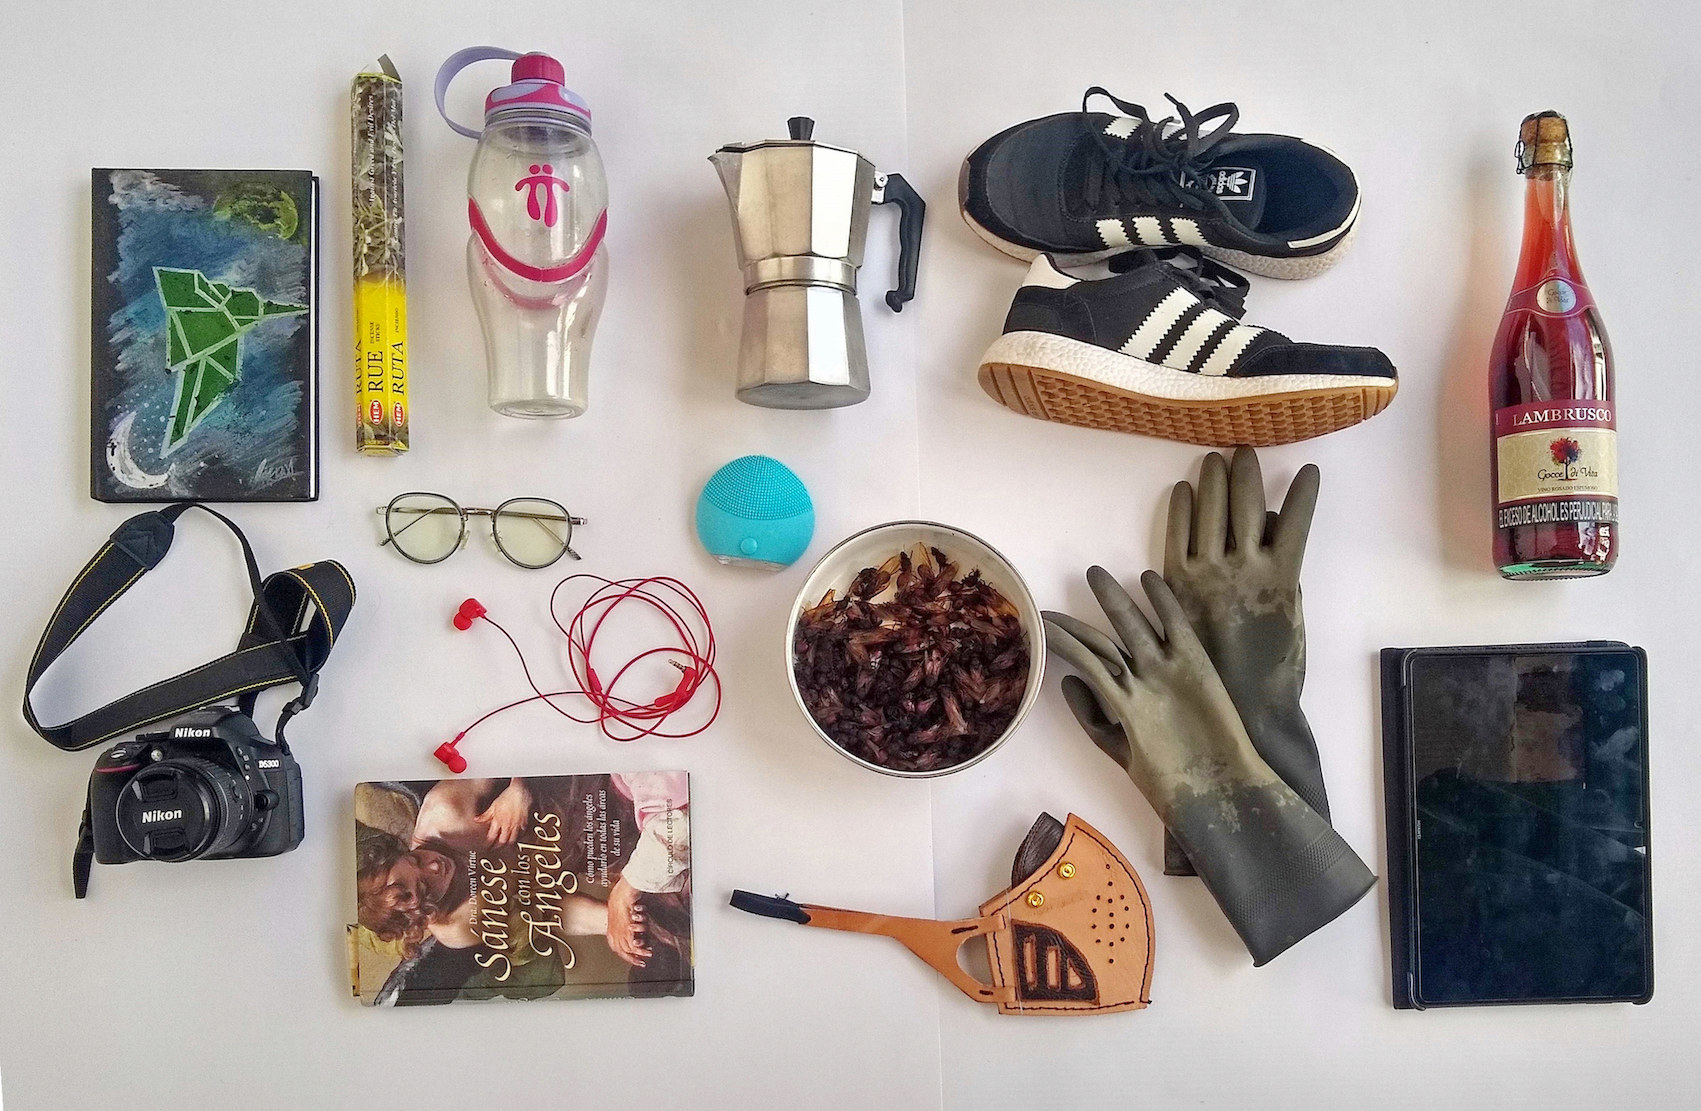 Items laid out on a floor, including a water bottle, coffee-maker, camera, shoes, and gloves